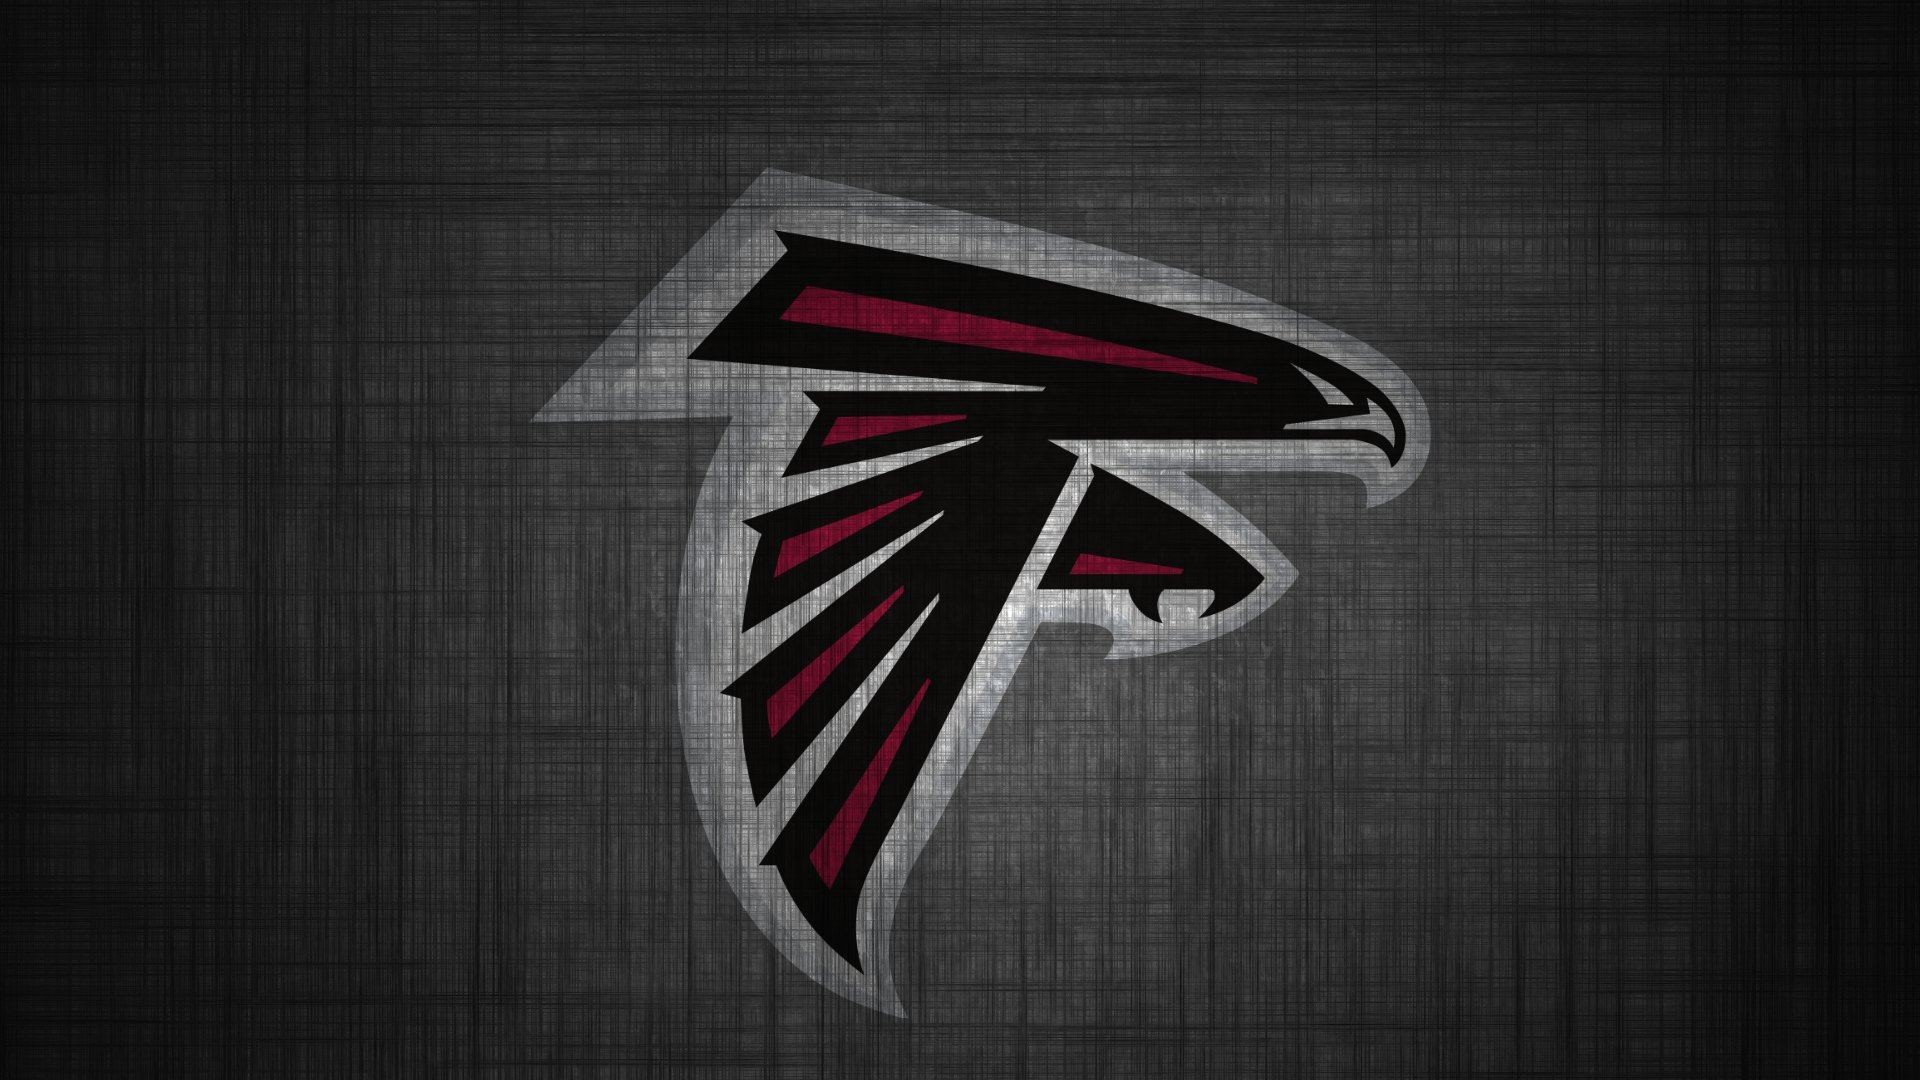 Atlanta Falcons Images: Atlanta Falcons Desktop Wallpaper ·① WallpaperTag